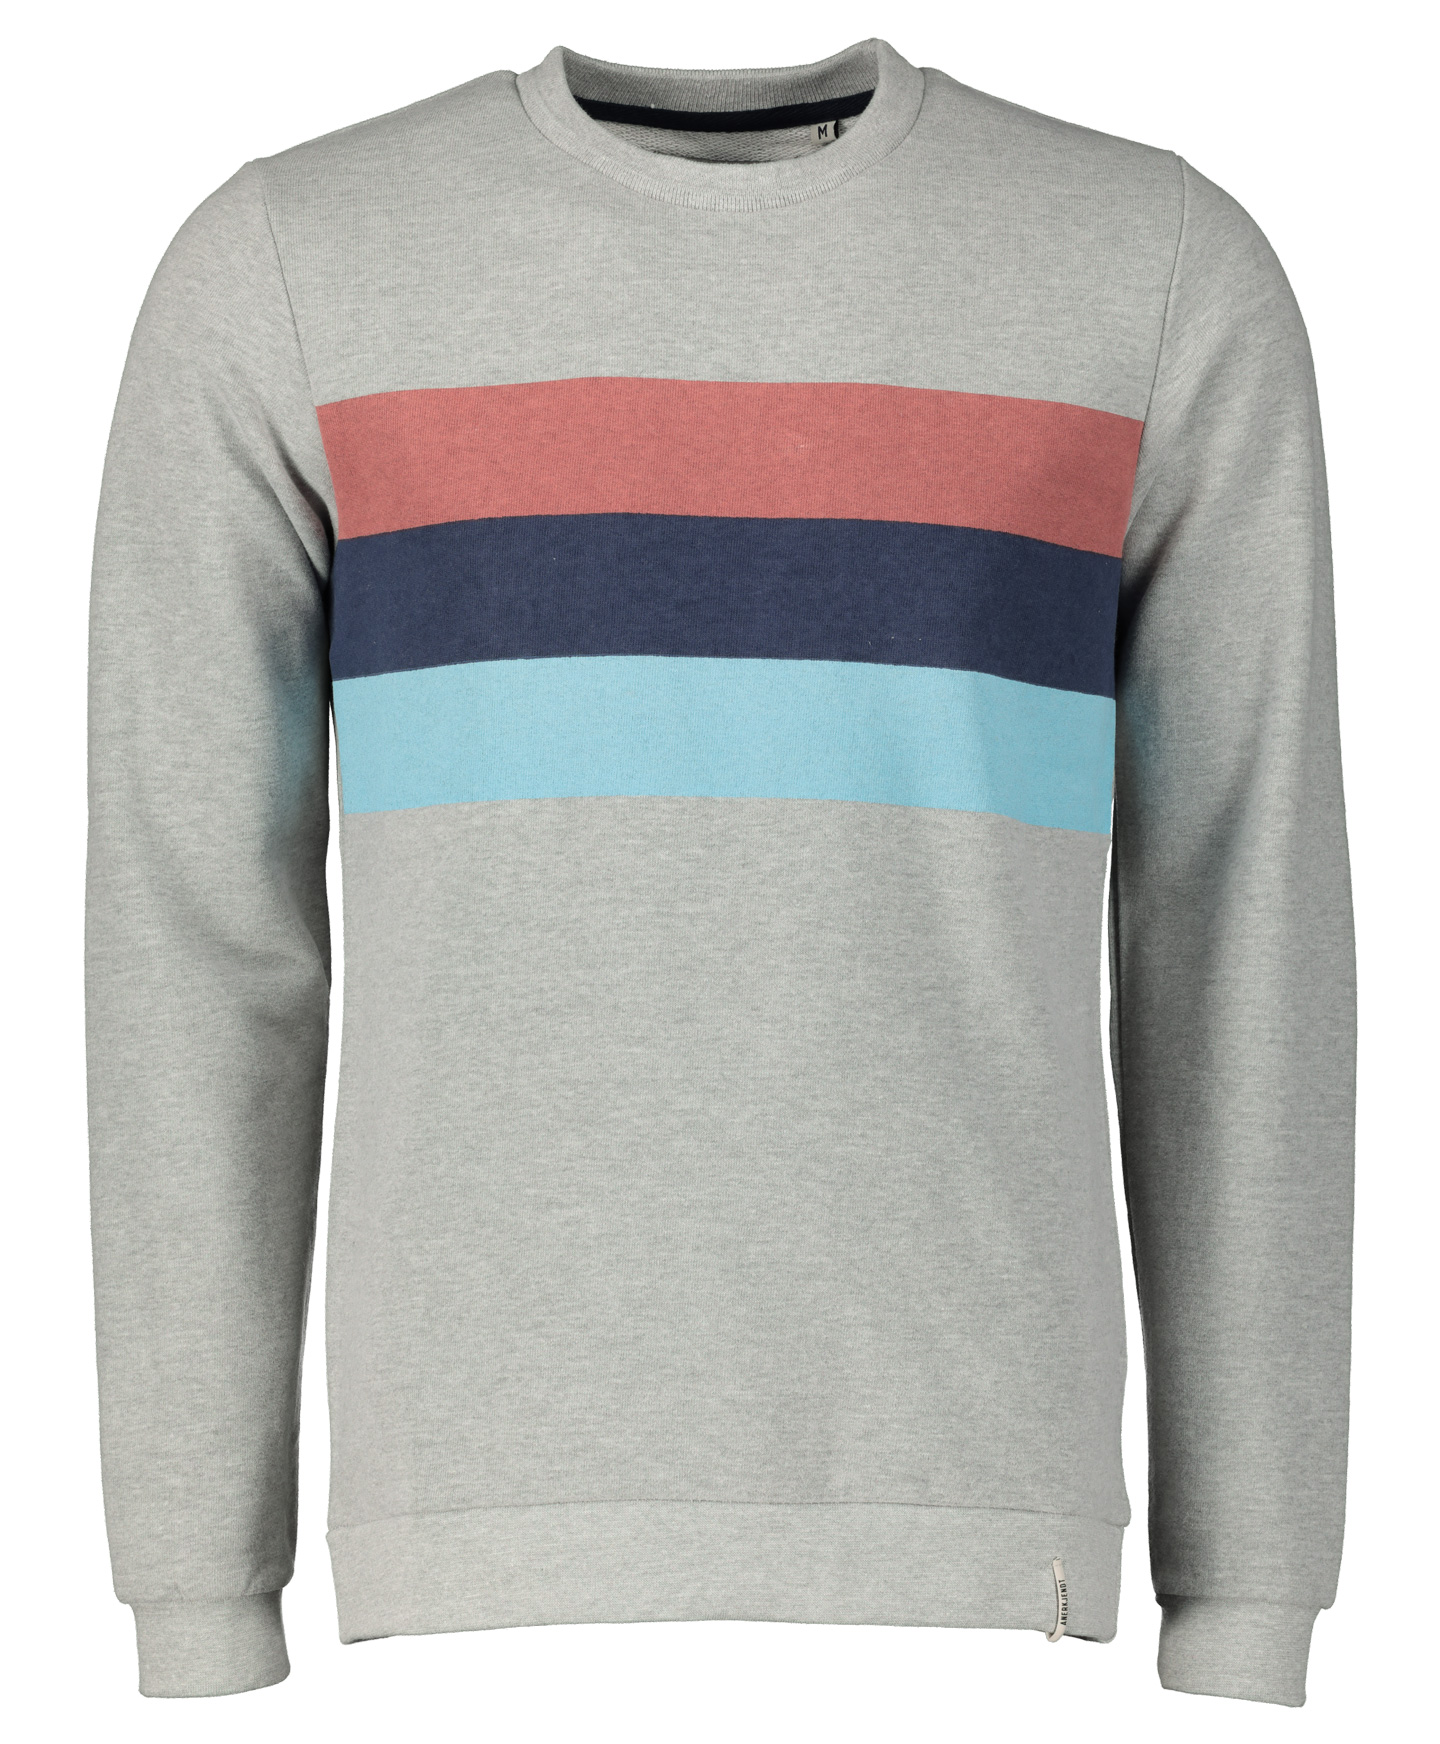 Anerkjendt Sweater - Slim Fit - Grijs